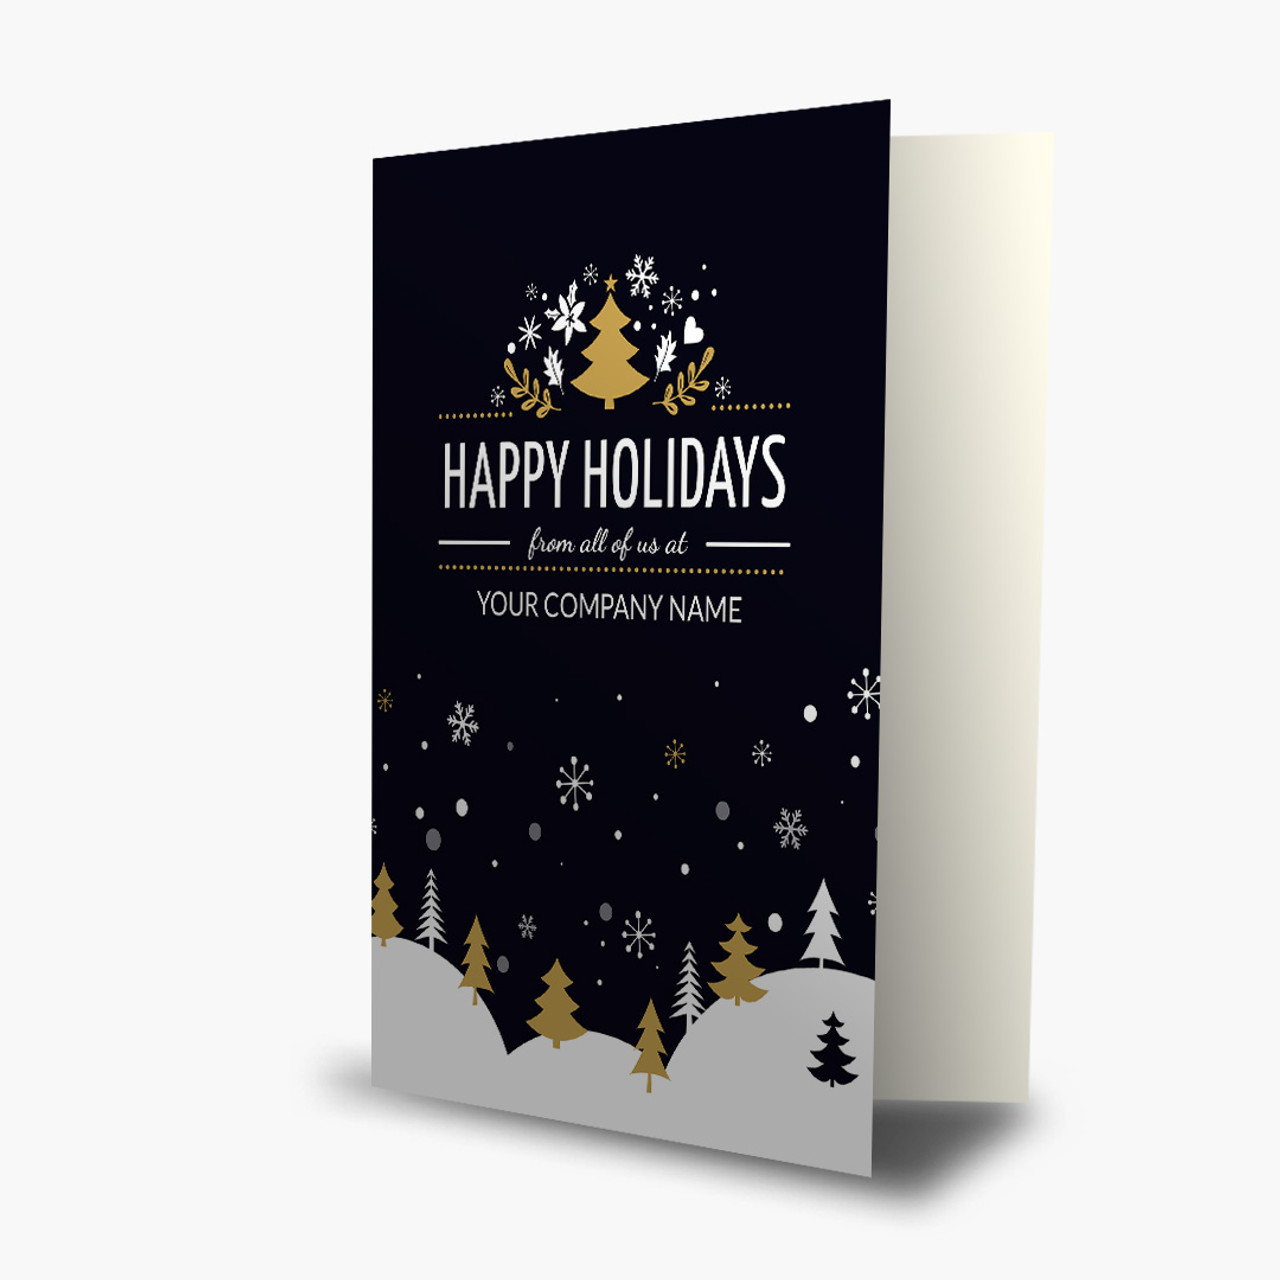 A Winter Greeting Christmas Card